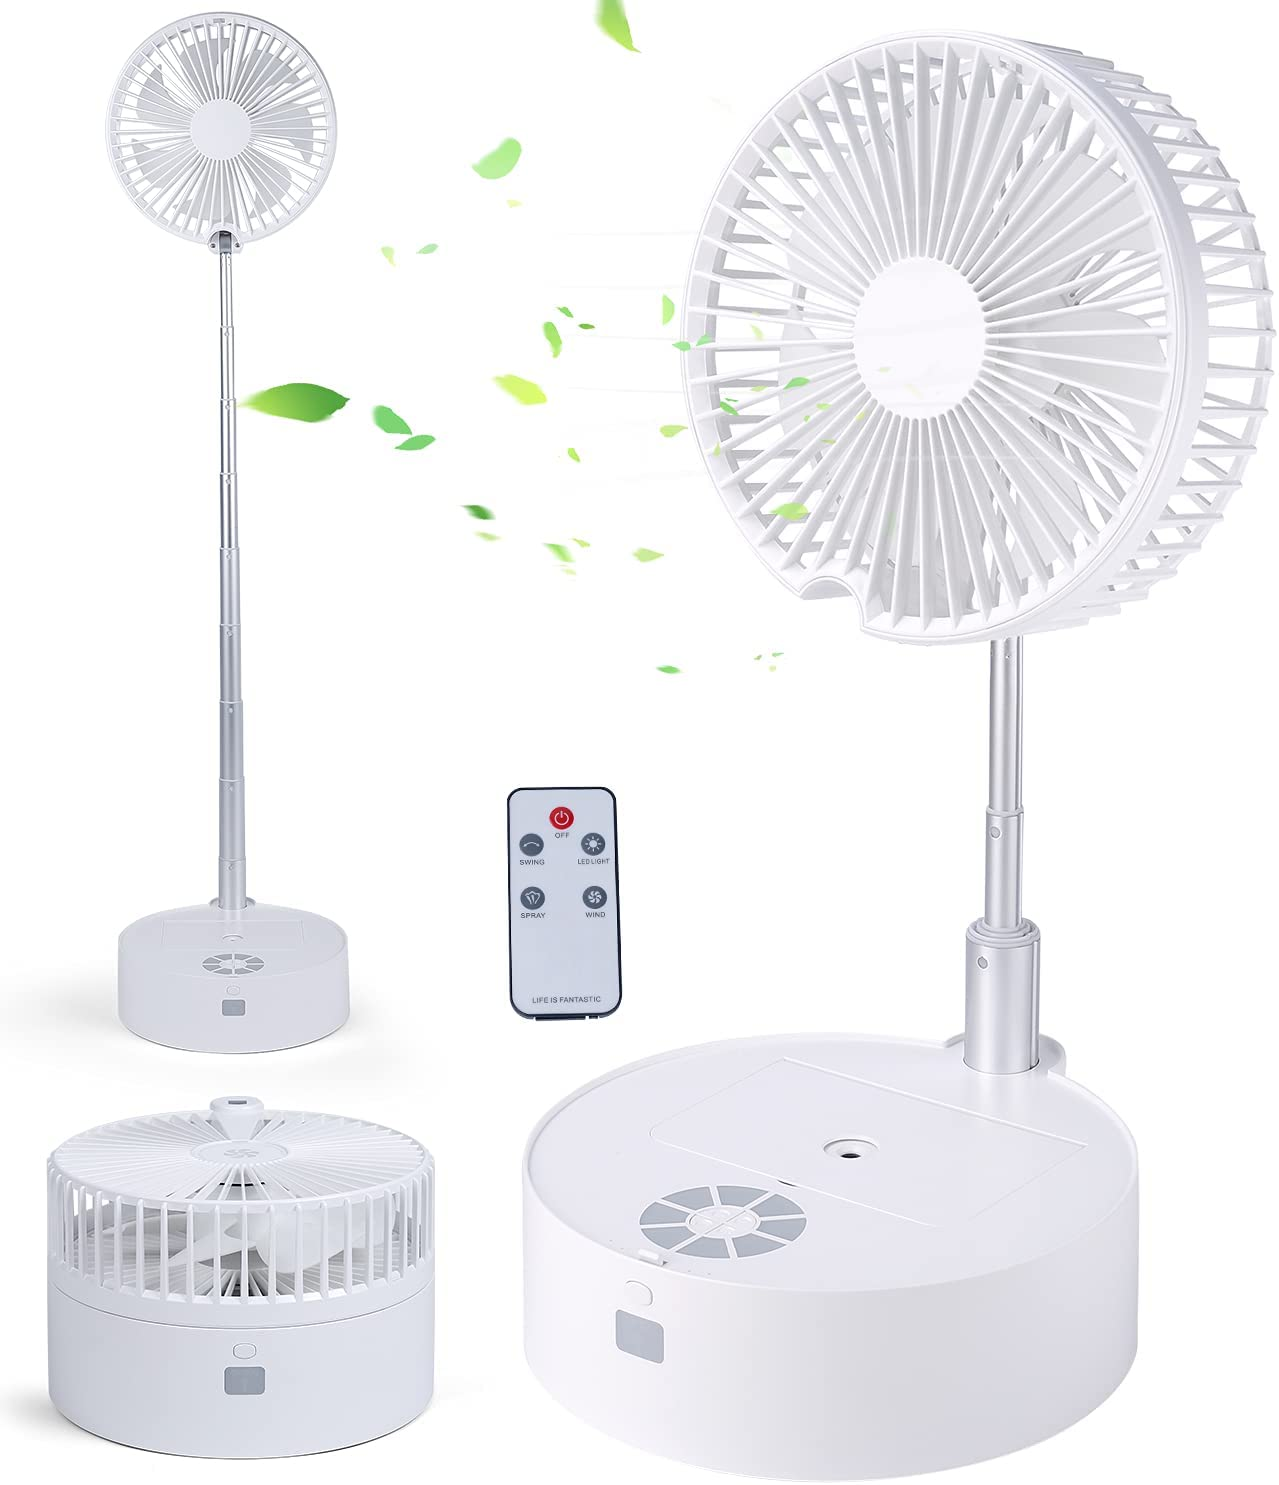 Portable Foldaway Kansas City Mall Fan Storage Desk co Floor Remove and with Cheap mail order specialty store